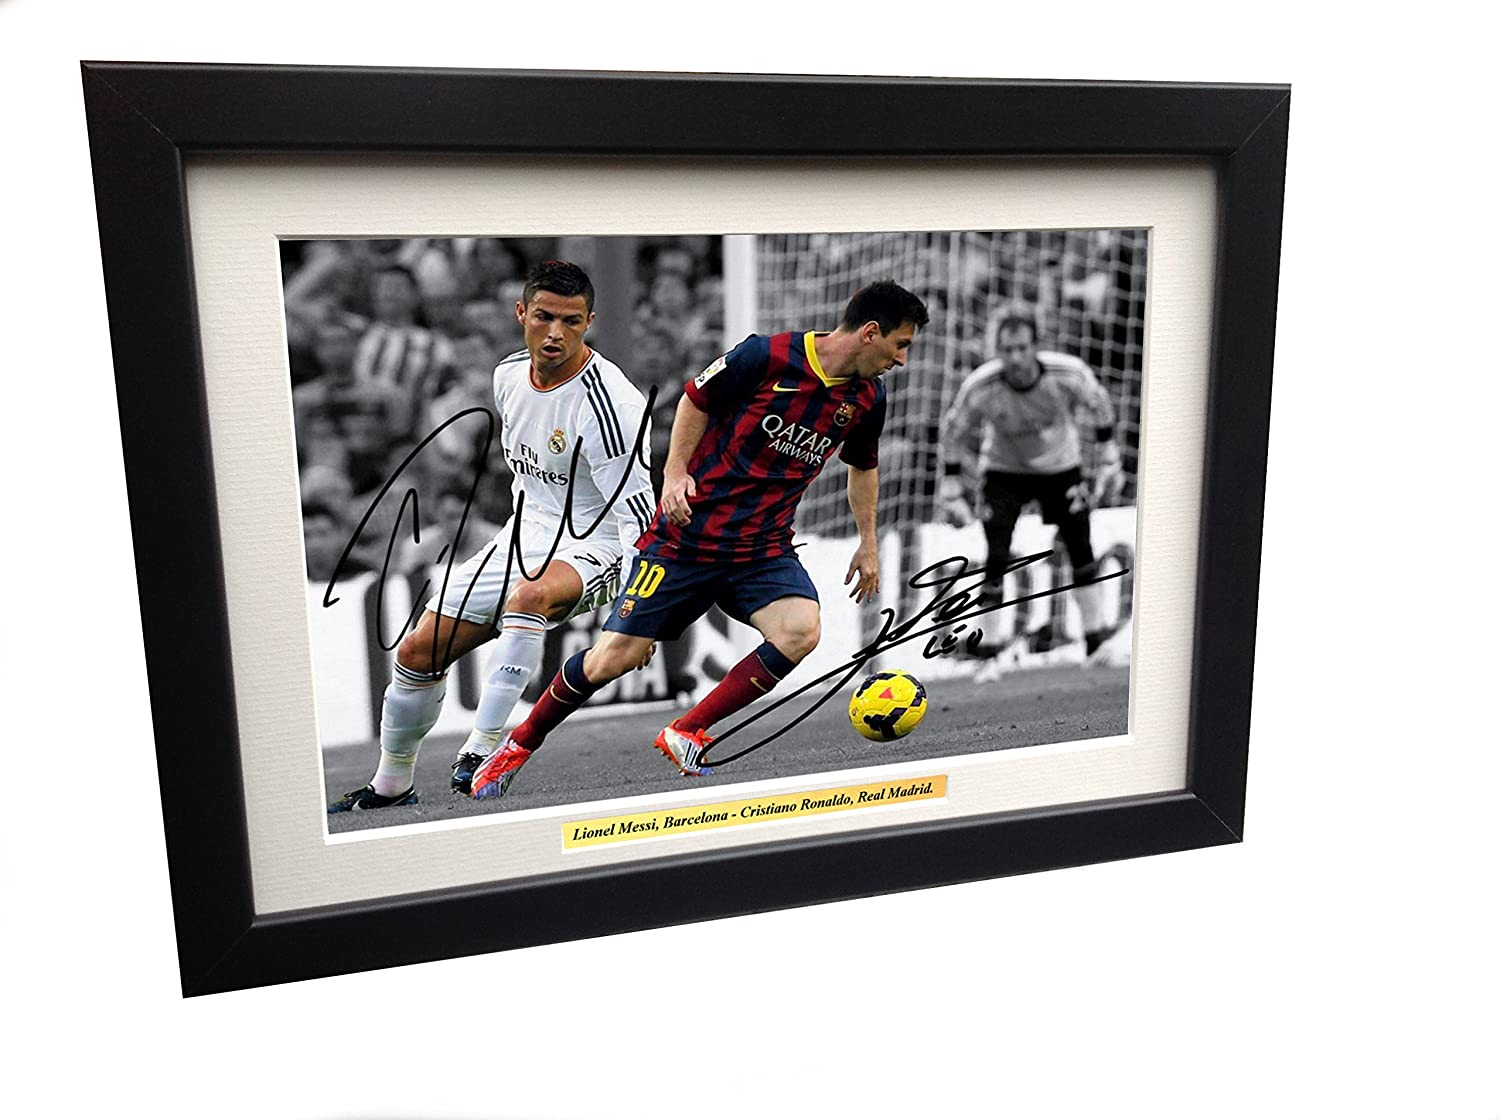 Signed 12x8 Black Soccer Lional Messi Barcelona Cristiano Ronaldo Real Madrid Autographed Photo Photograph Football Picture Frame Gift A4 kicks